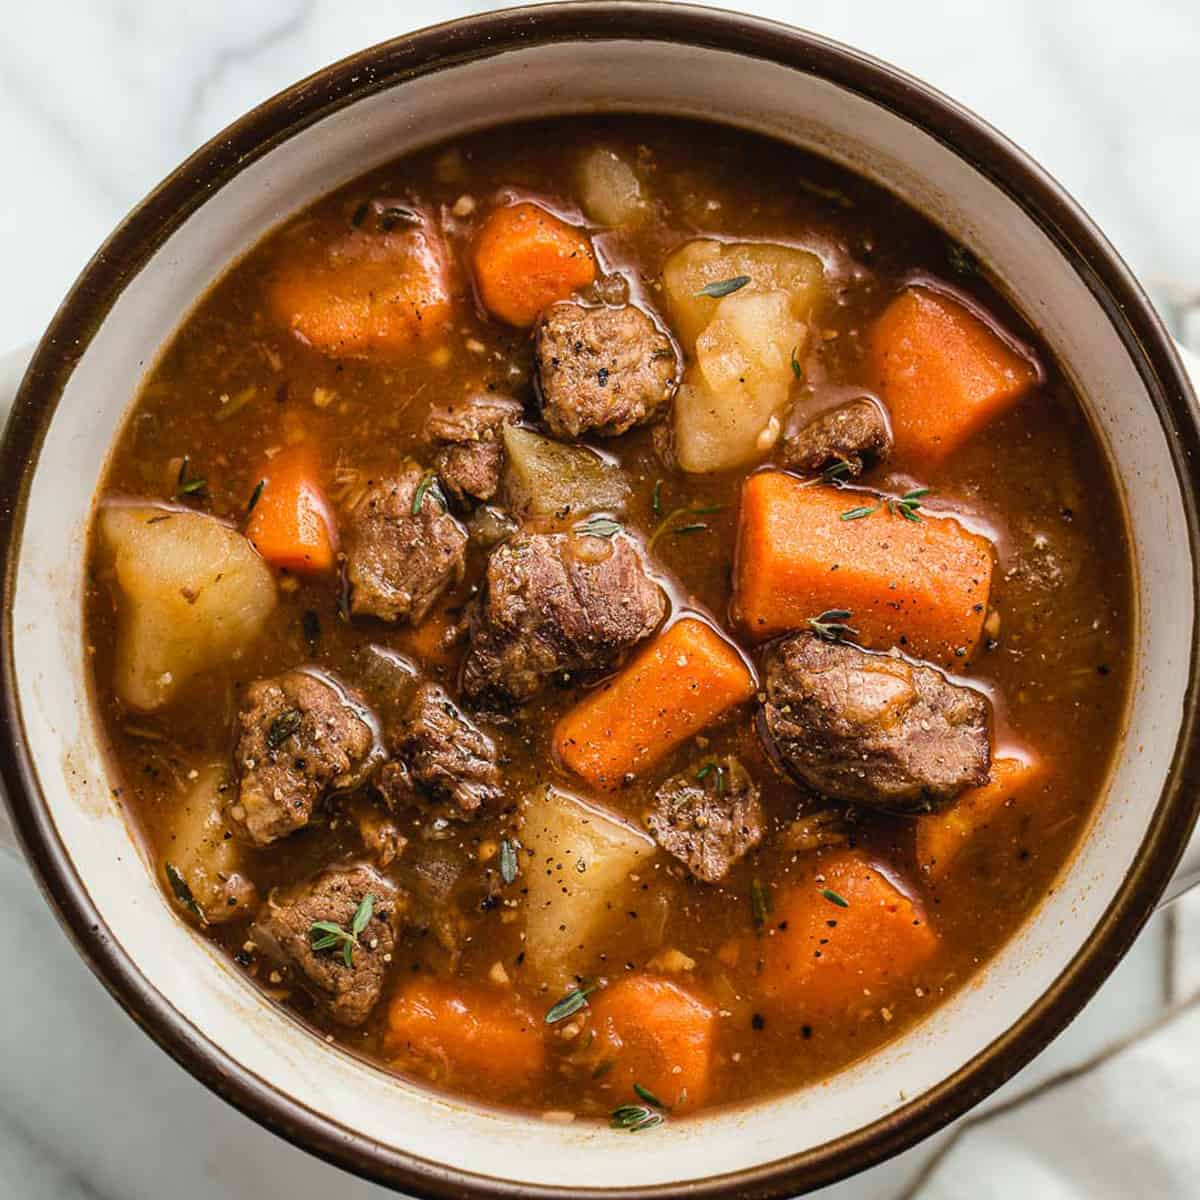 A top view of beef stew in a bowl.